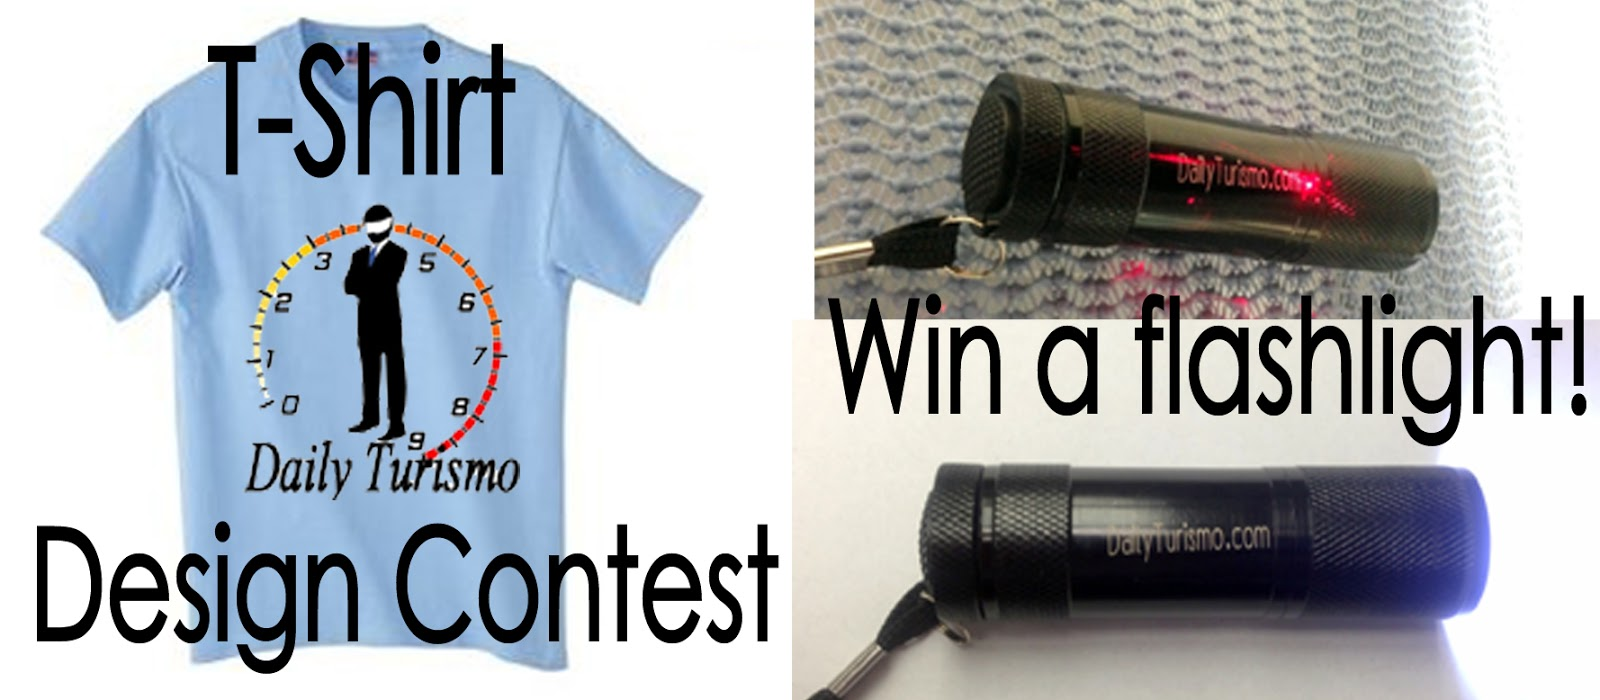 T-Shirt Design Contest: Win a Laser Etched Flashlight